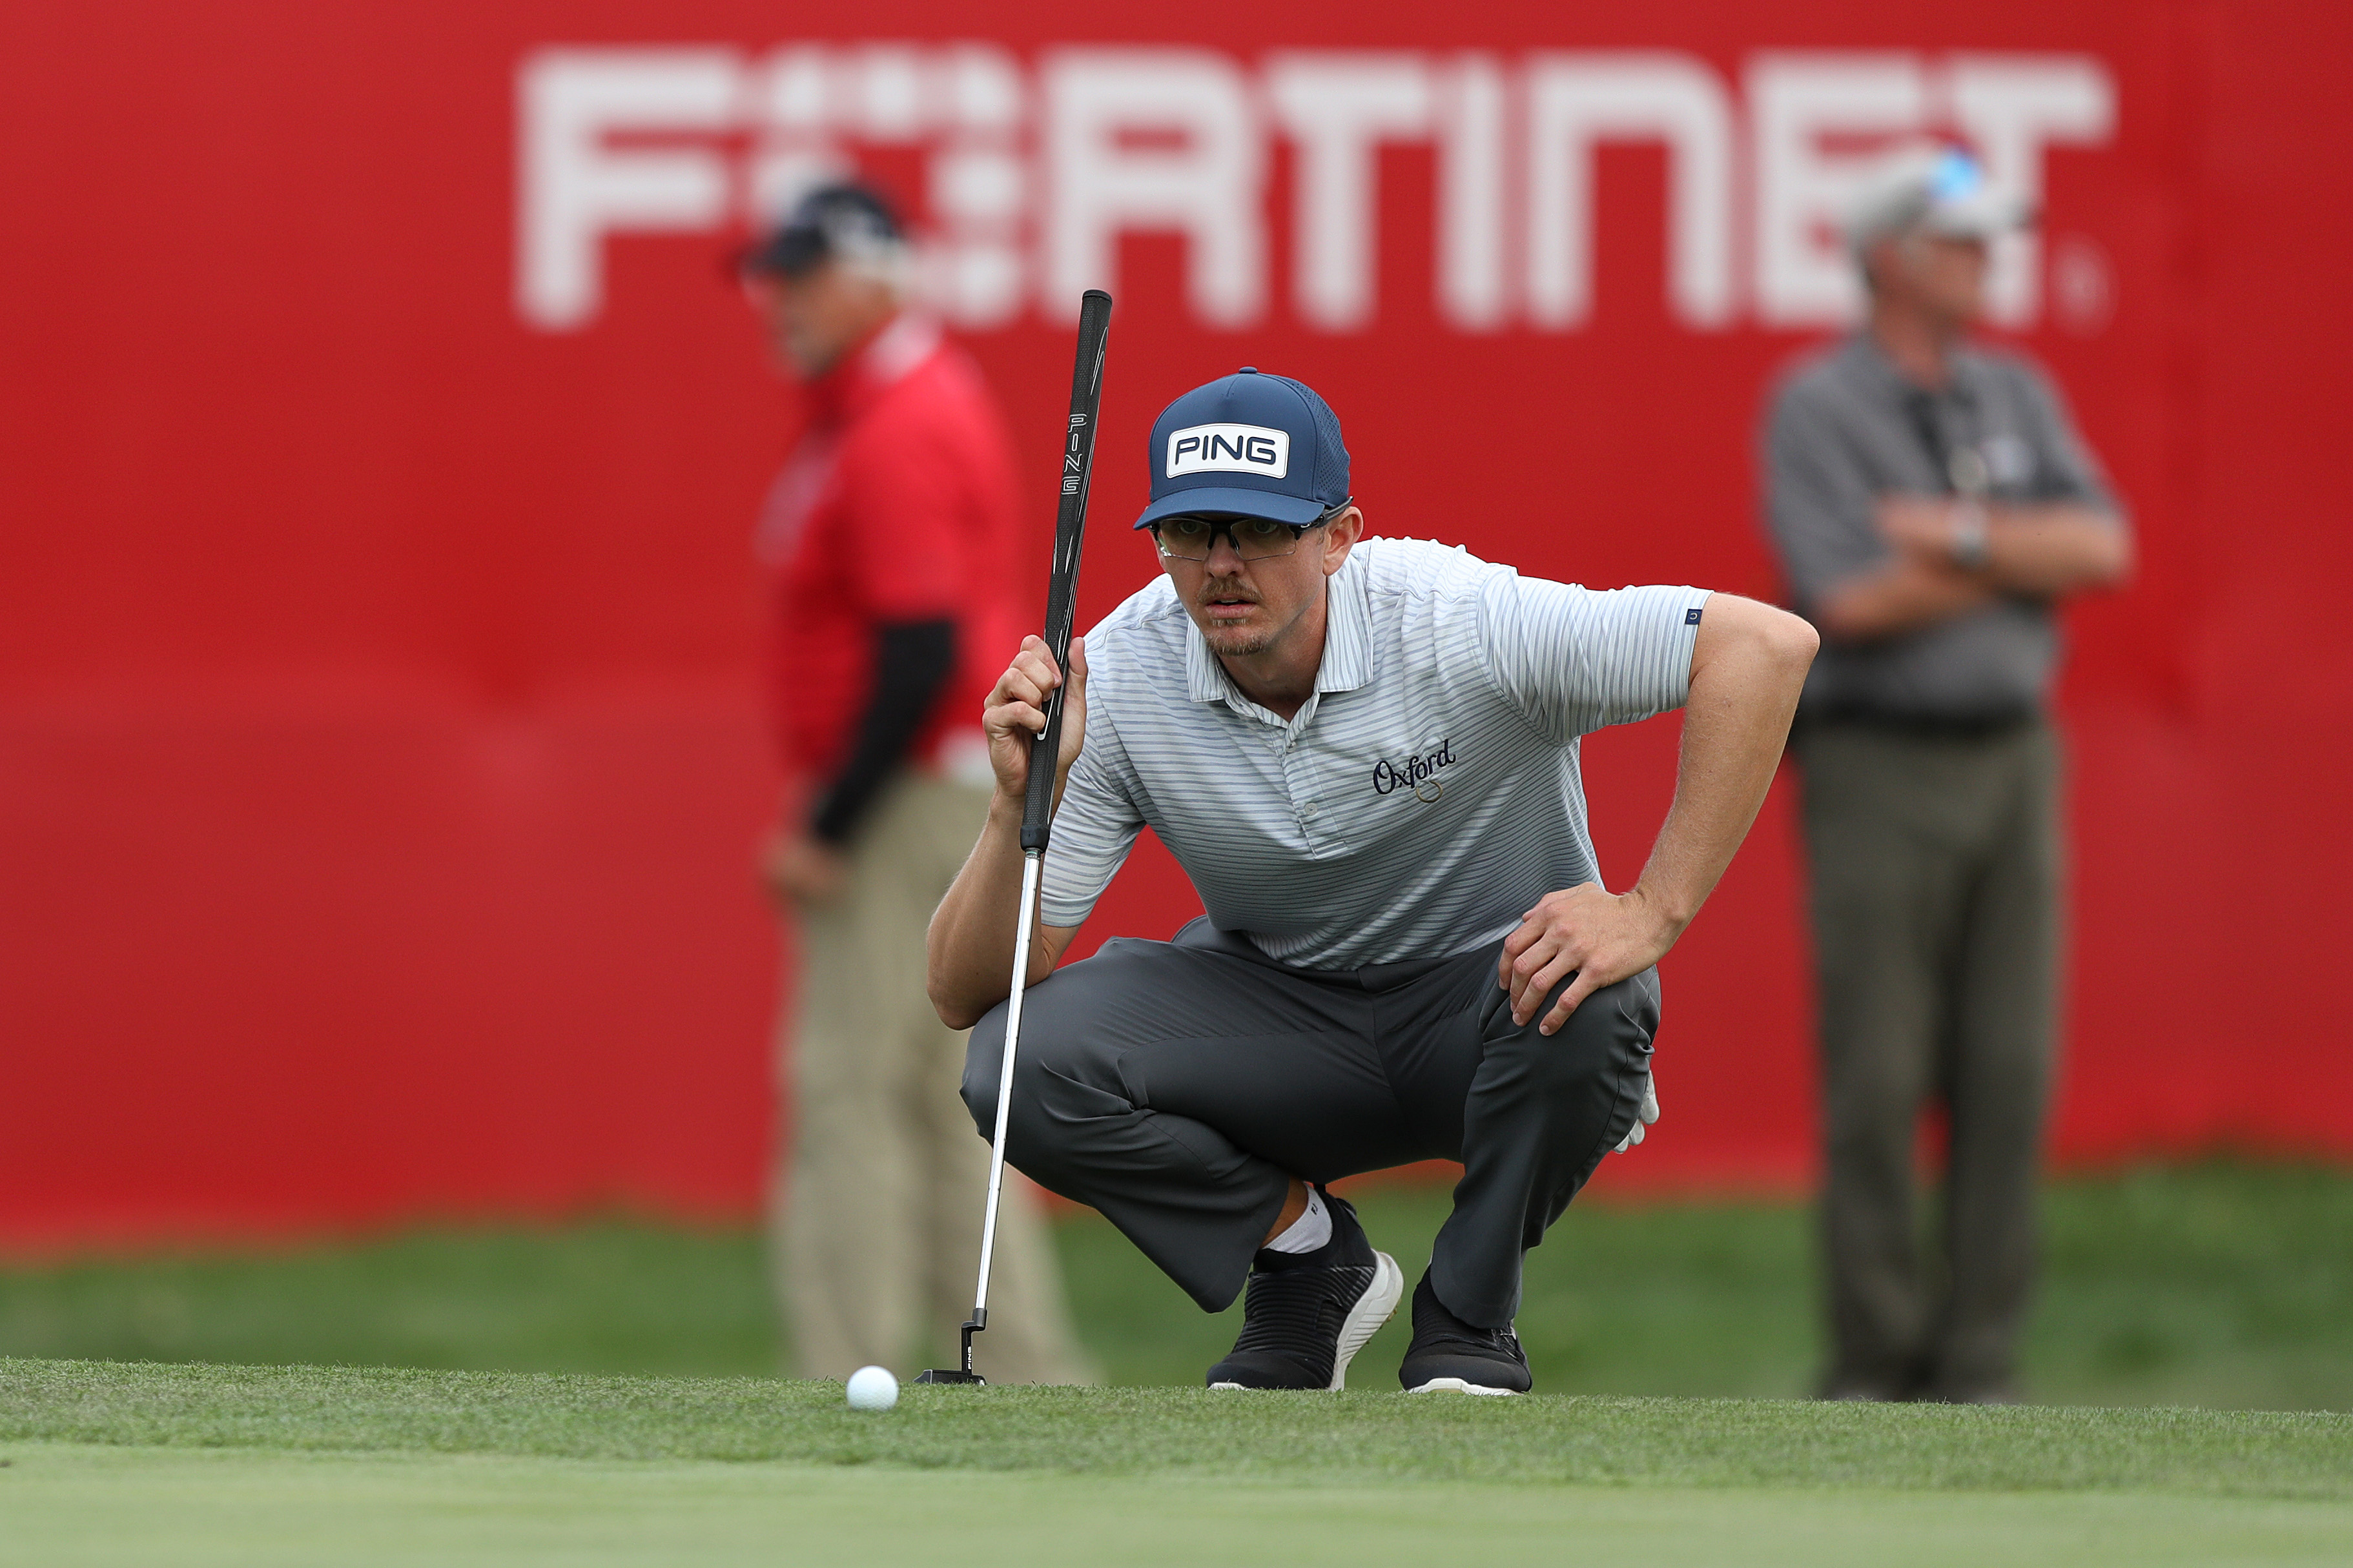 Jim Knous lines up his putt on the 18th hole during round three of the Fortinet Championship at Silverado Resort and Spa on September 18, 2021 in Napa, California.